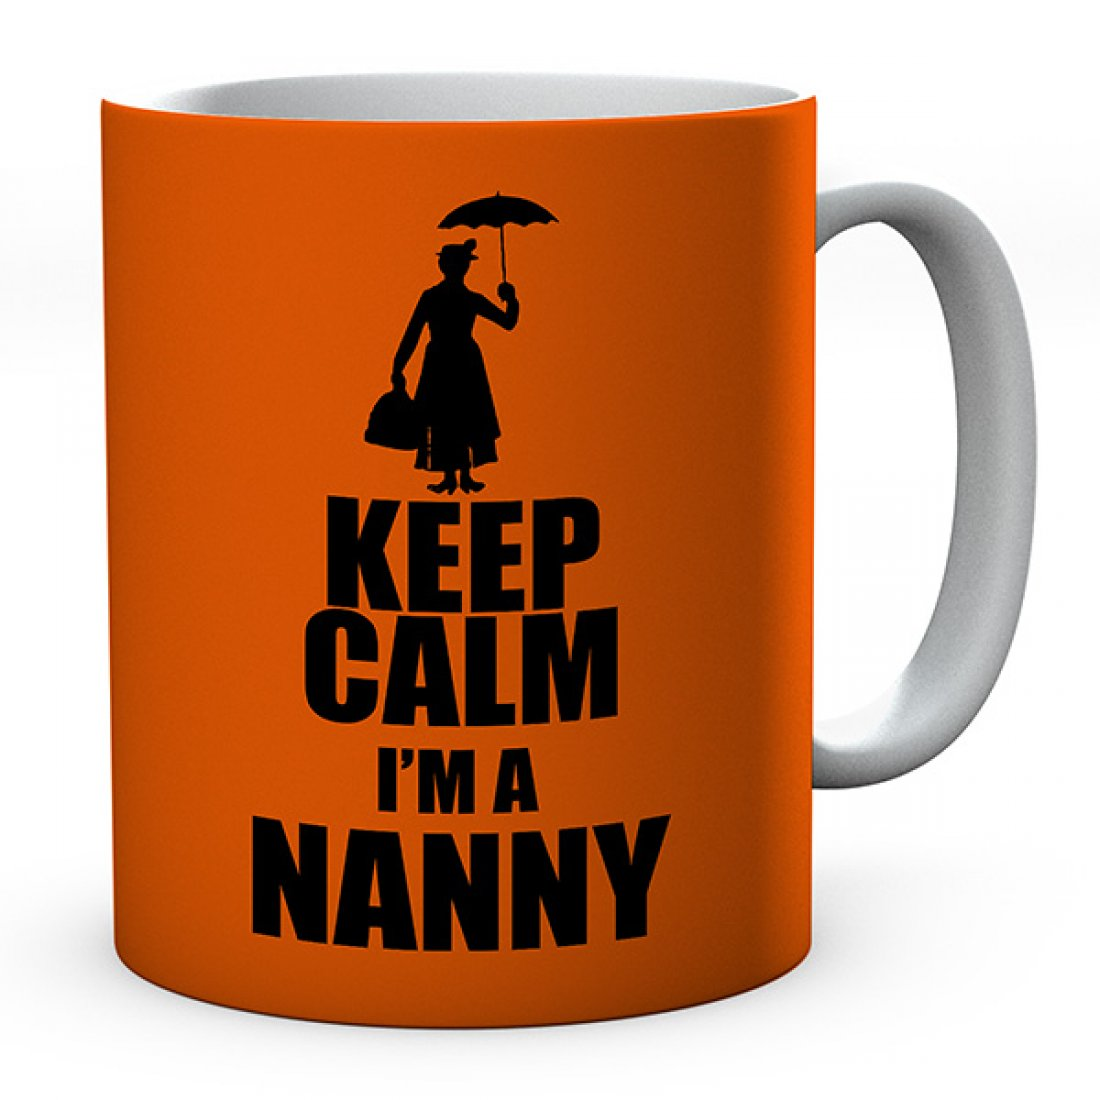 Keep Calm I'm A Nanny Ceramic Mug